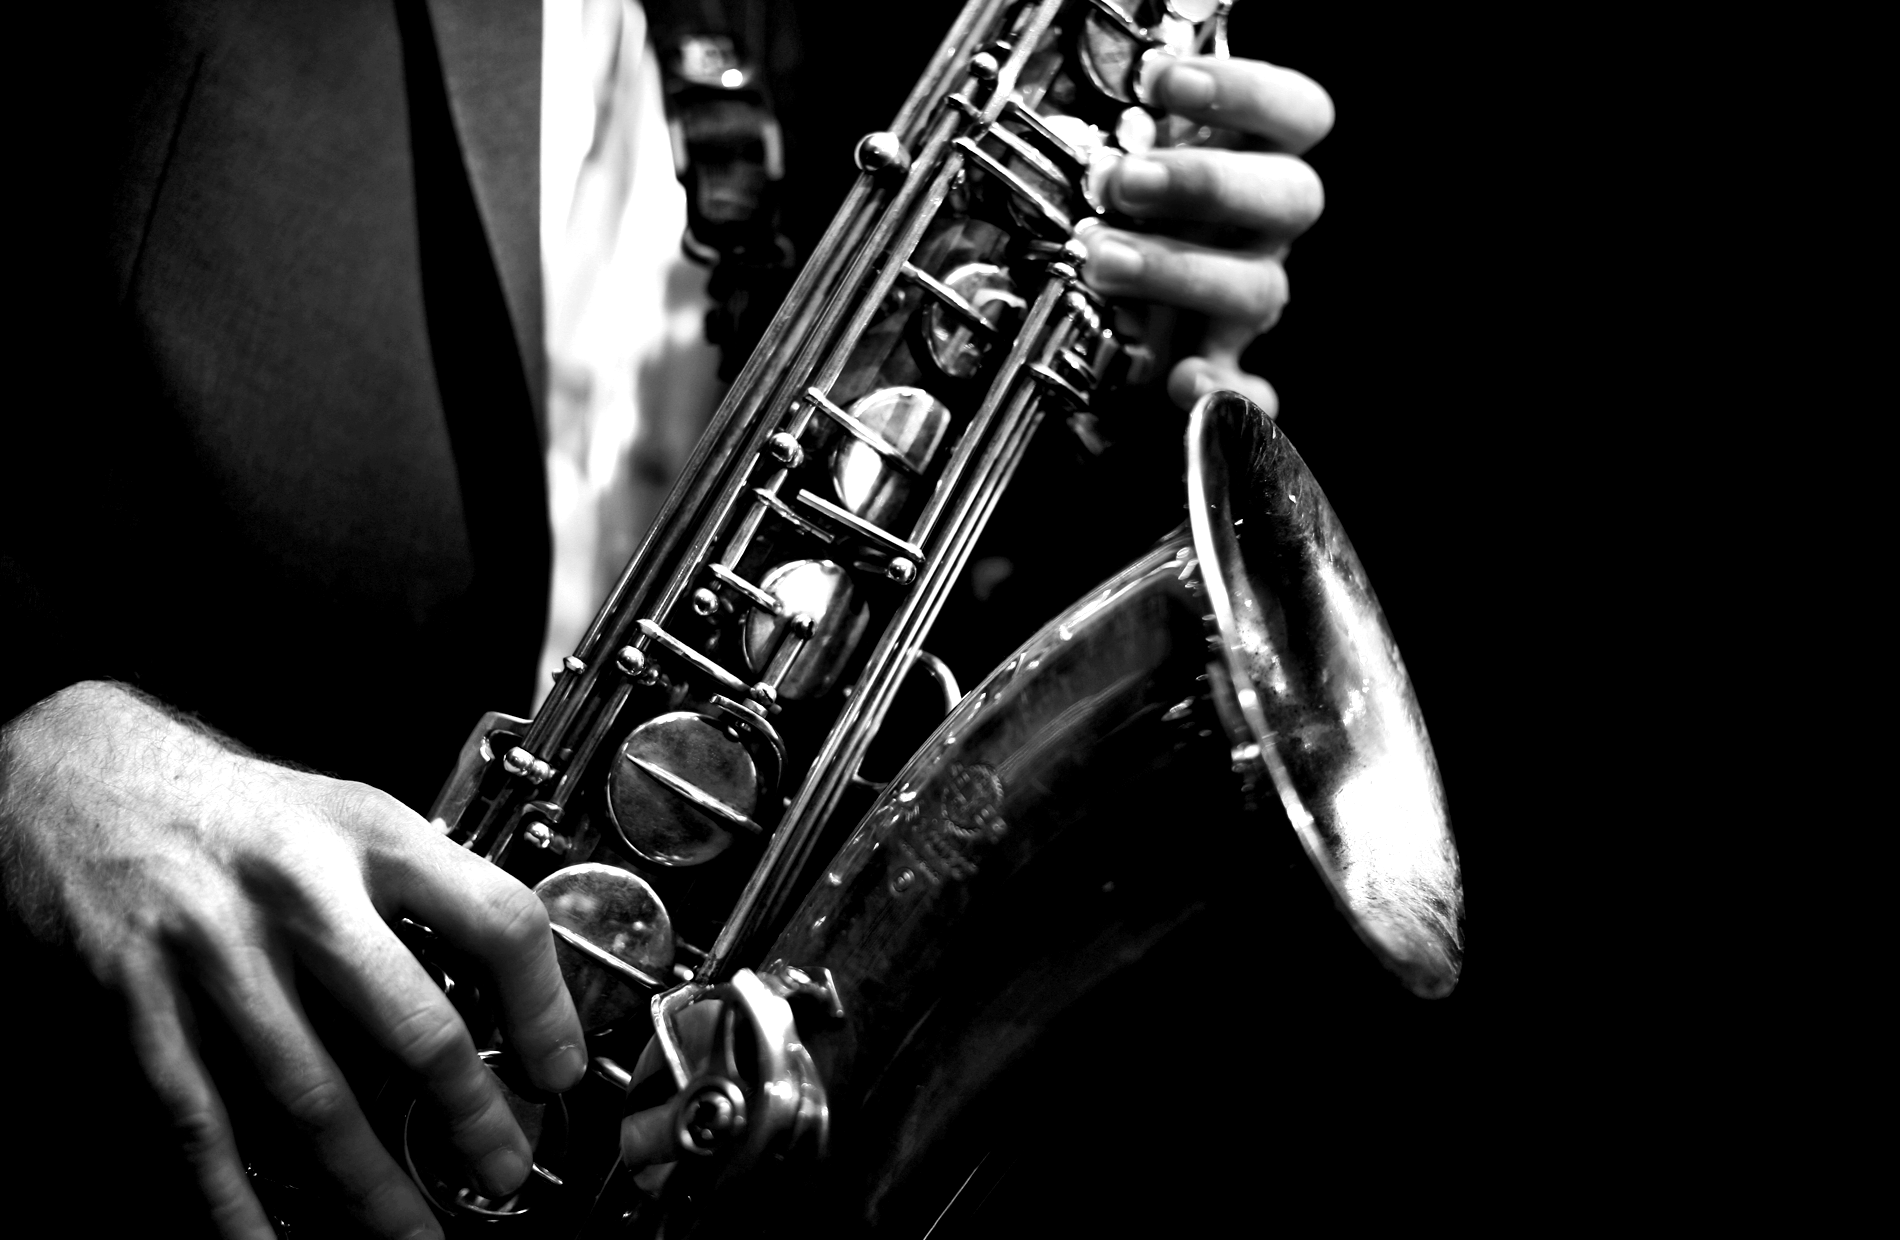 Saxophone Wallpapers High Definition For Desktop Wallpaper «Long